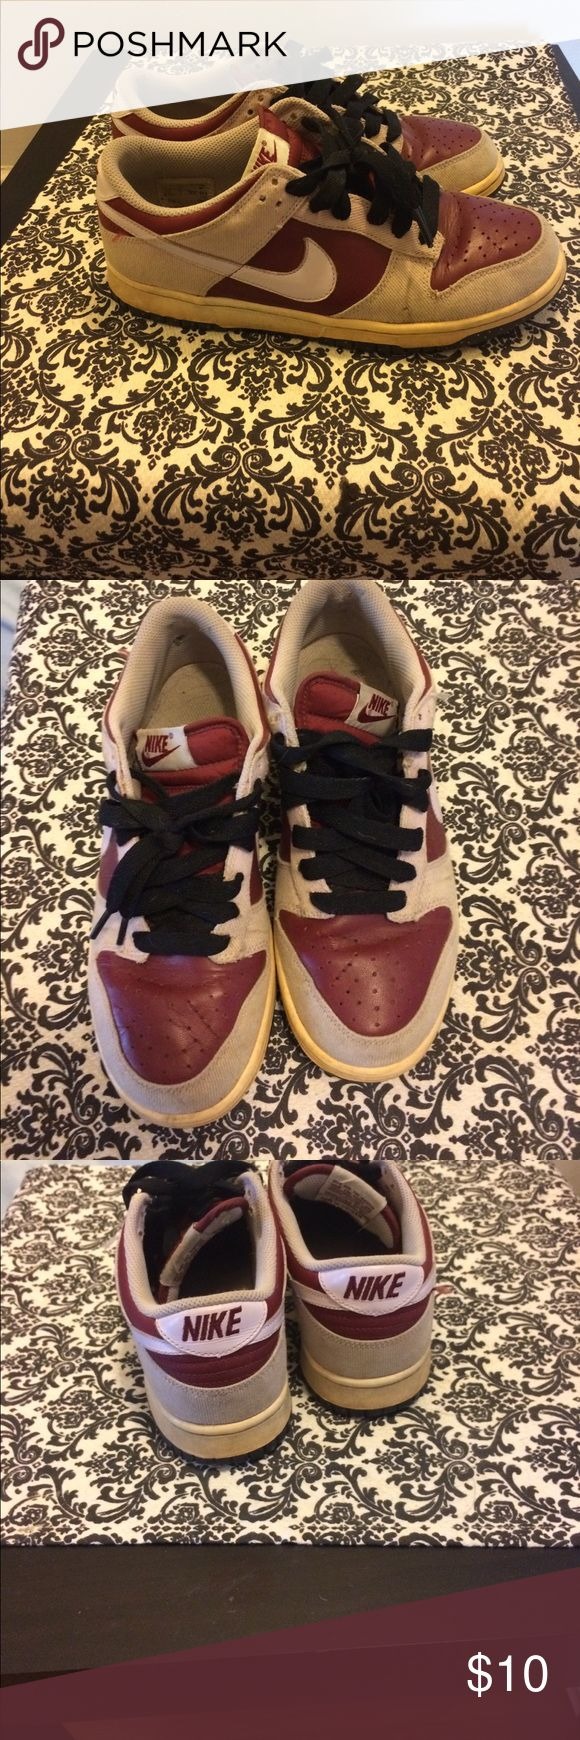 Nike Air Force 1 Pink and maroon size 7.5 Nike Shoes Sneakers